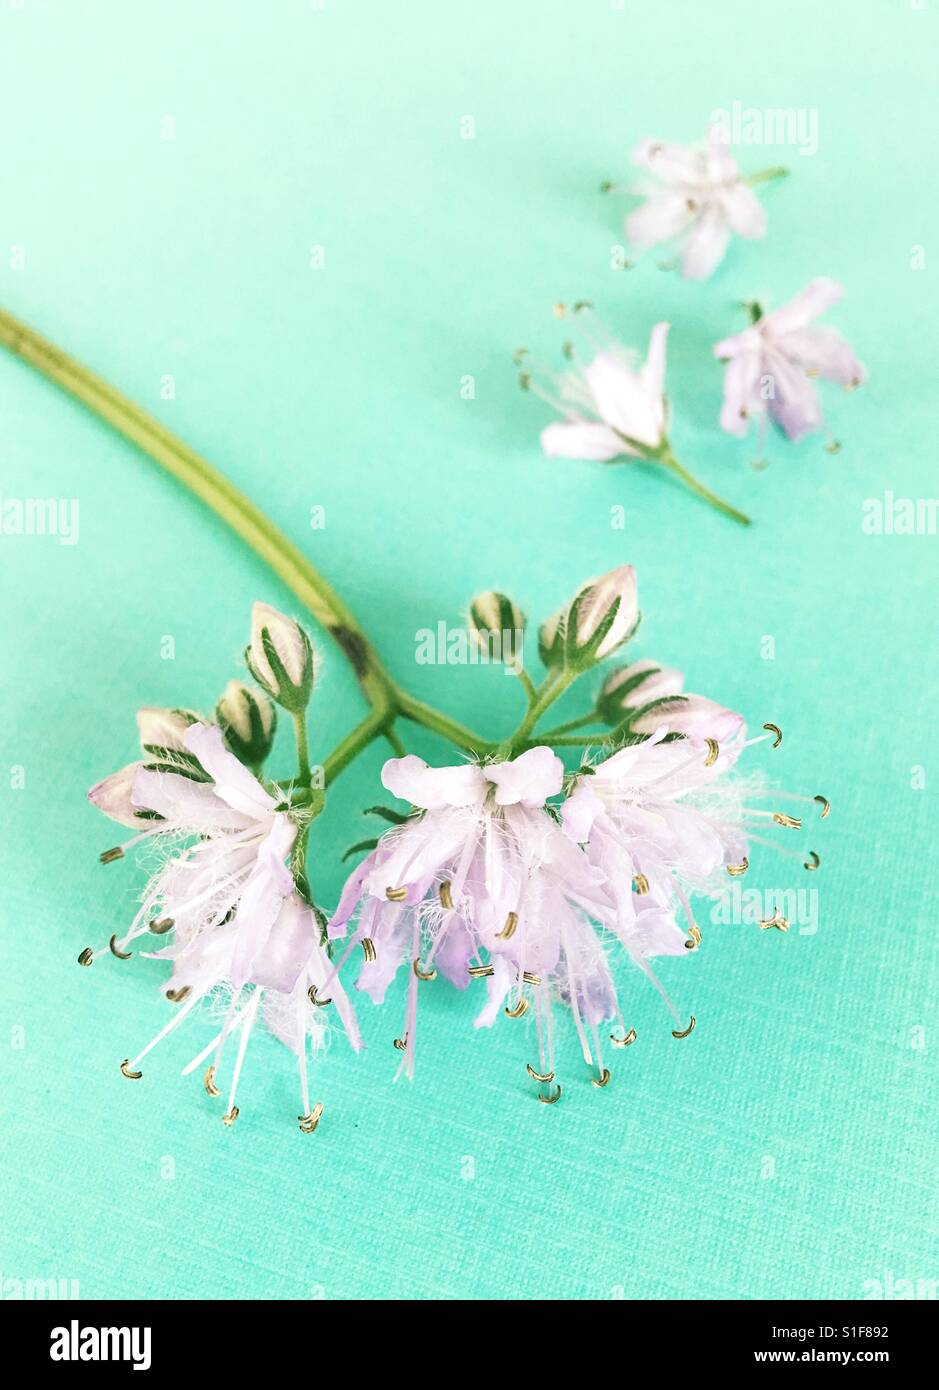 A flower with parts fallen off. - Stock Image